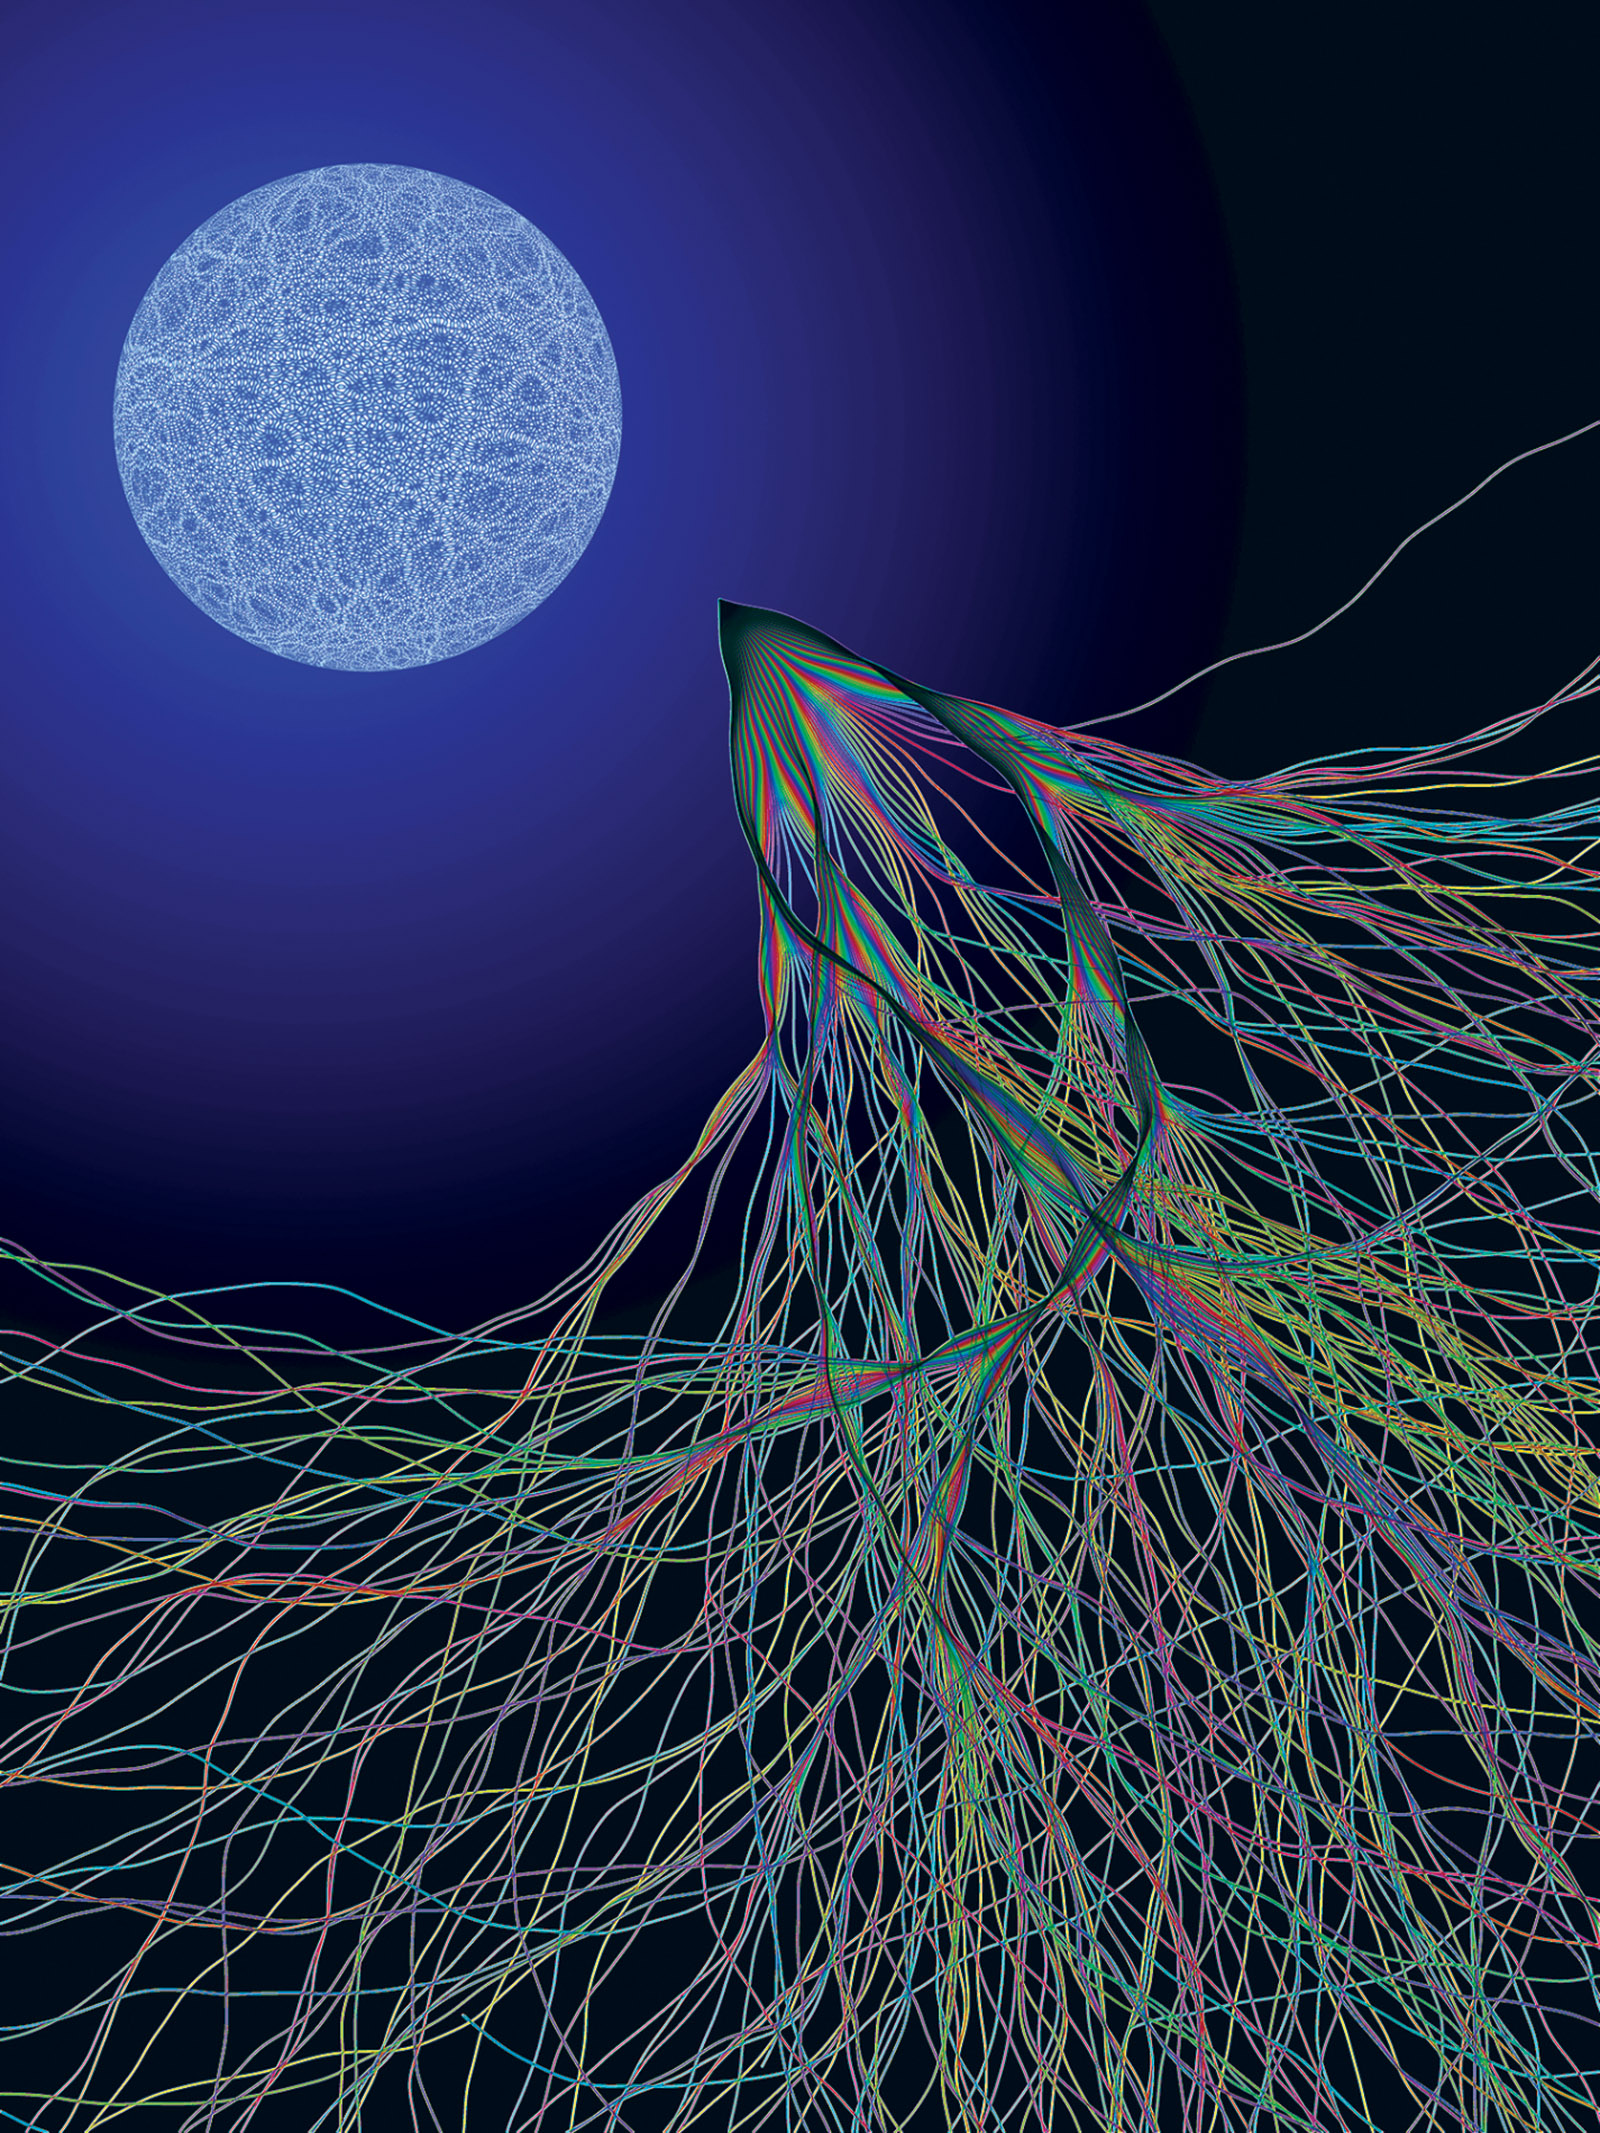 The physicist Eric J. Heller's <i>Transport XIII</i> (2003), inspired by electron flow experiments conducted at Harvard. According to Heller, the image 'shows two kinds of chaos: a random quantum wave on the surface of a sphere, and chaotic classical